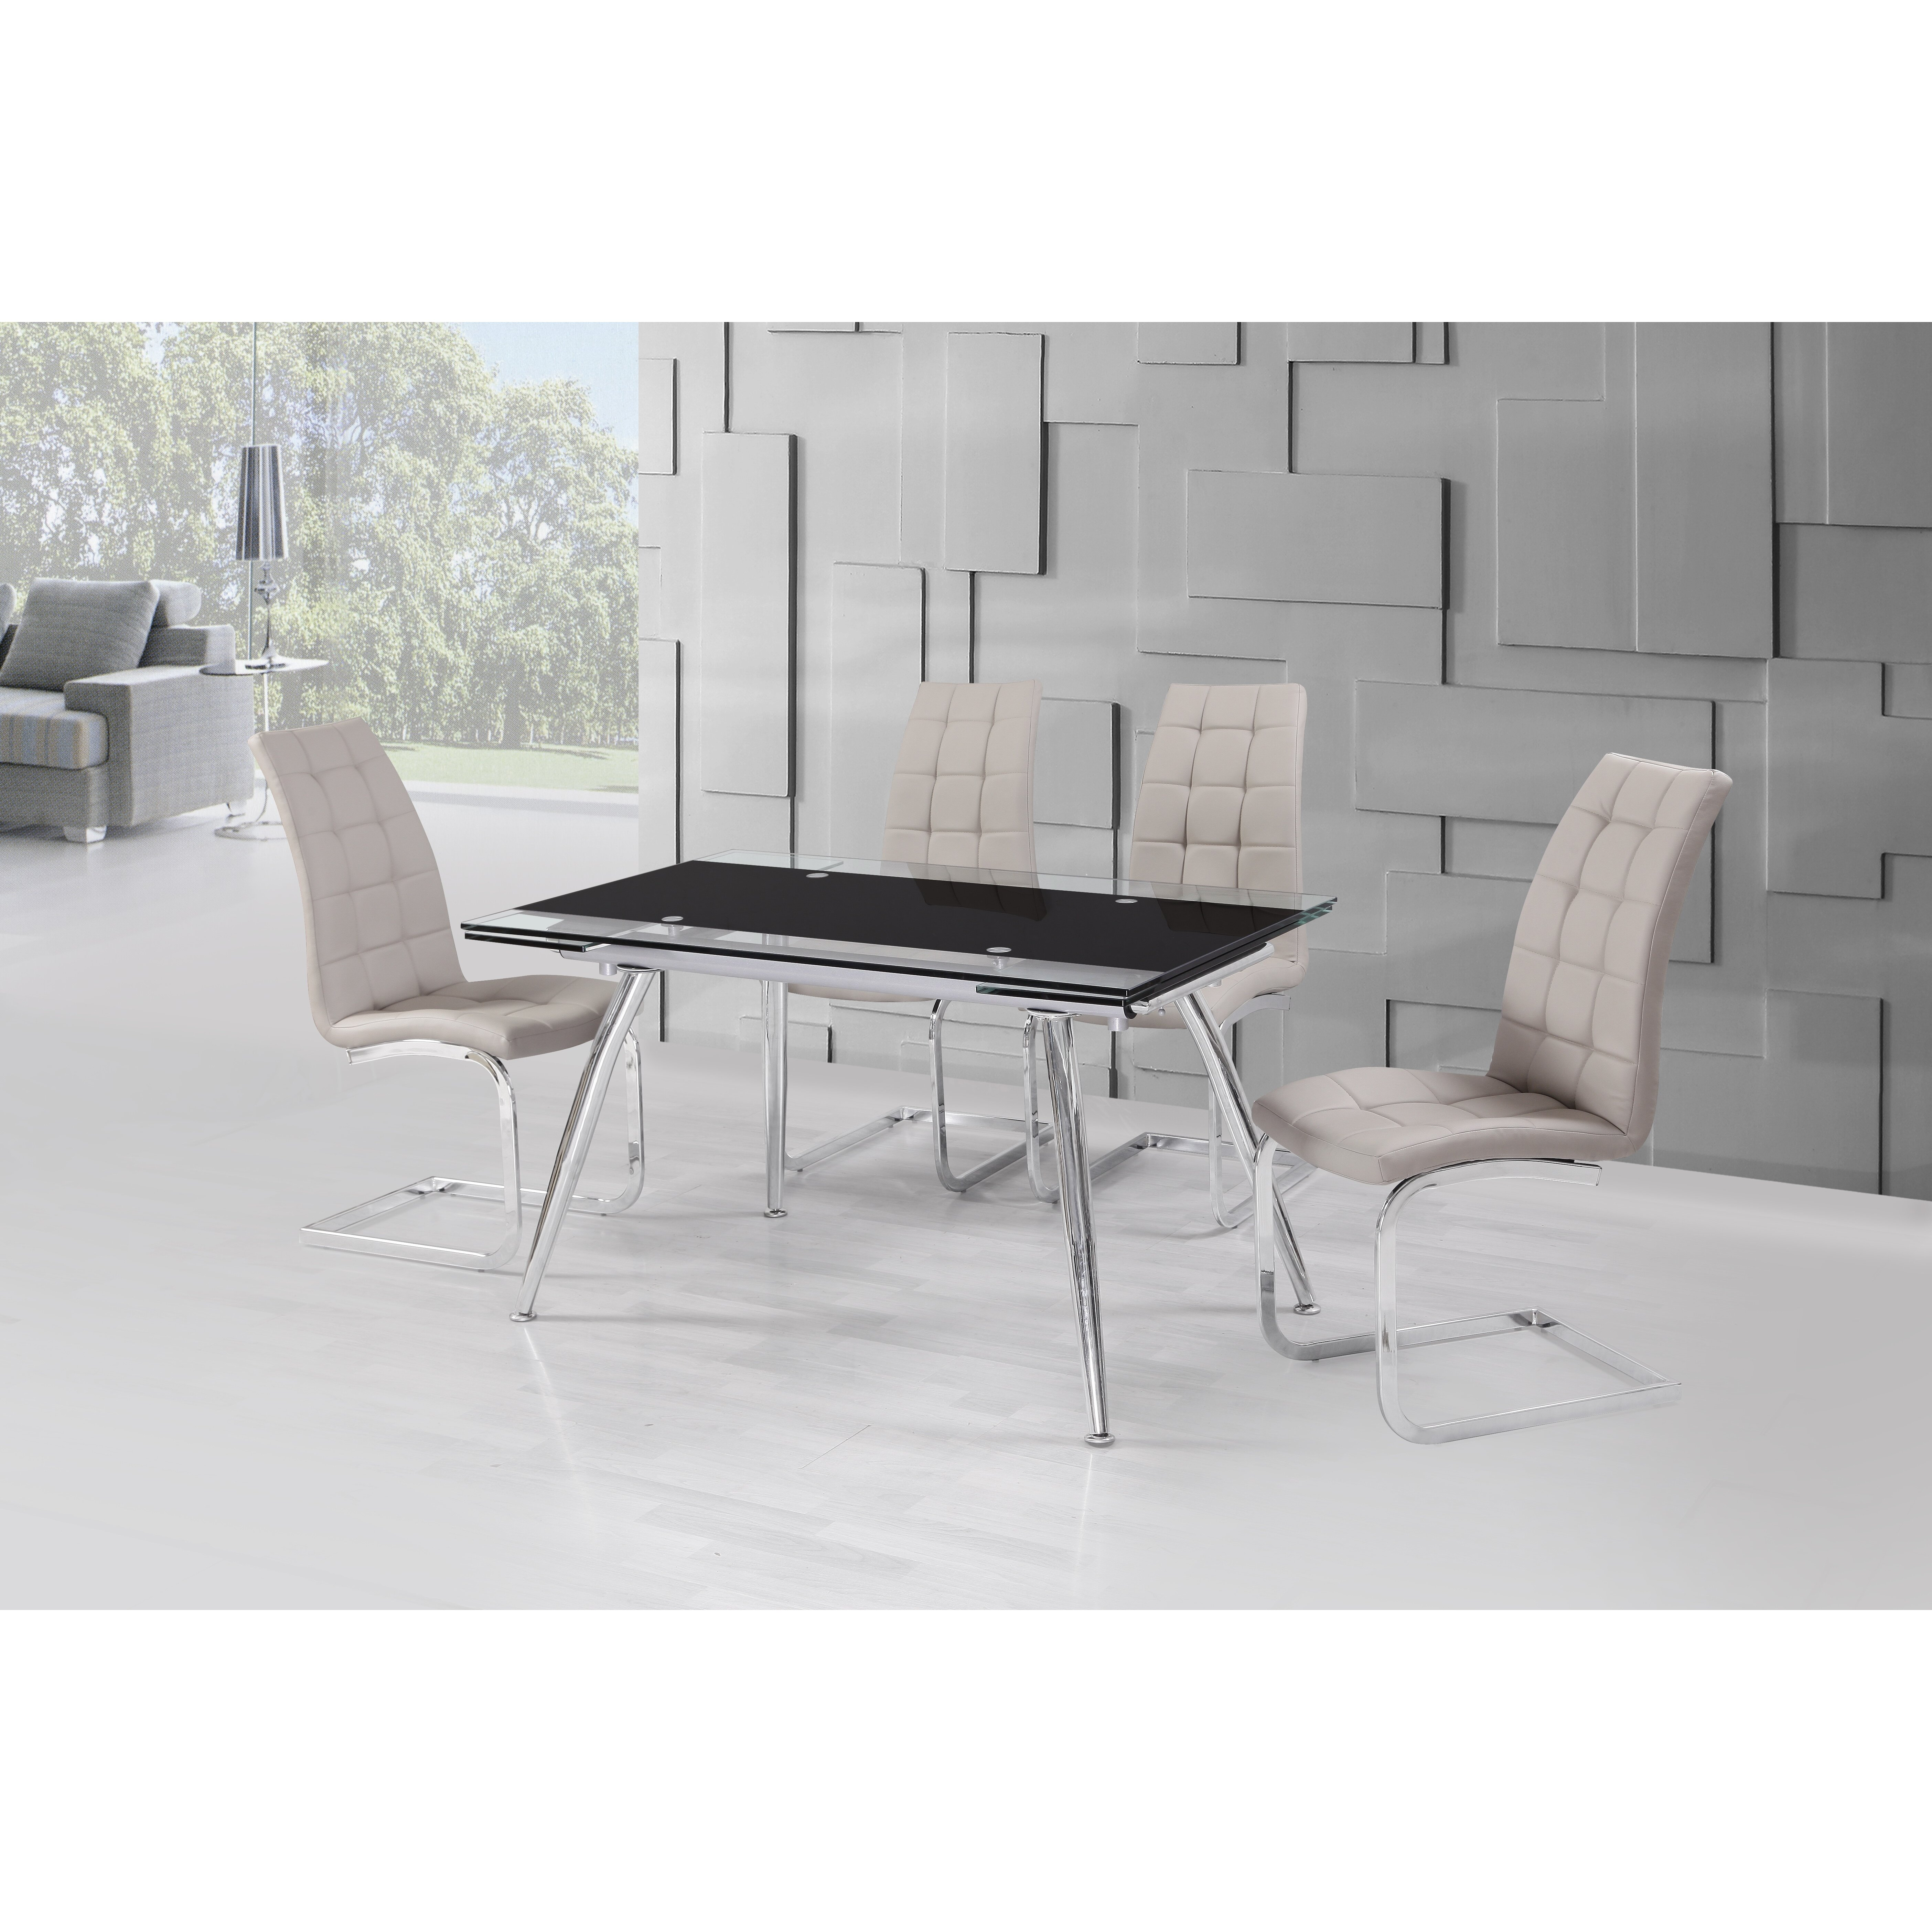 Urban Designs Micha Extendable Dining Table amp Reviews  : Urban Designs Micha Extendable Dining Table from www.wayfair.co.uk size 5616 x 5616 jpeg 3336kB